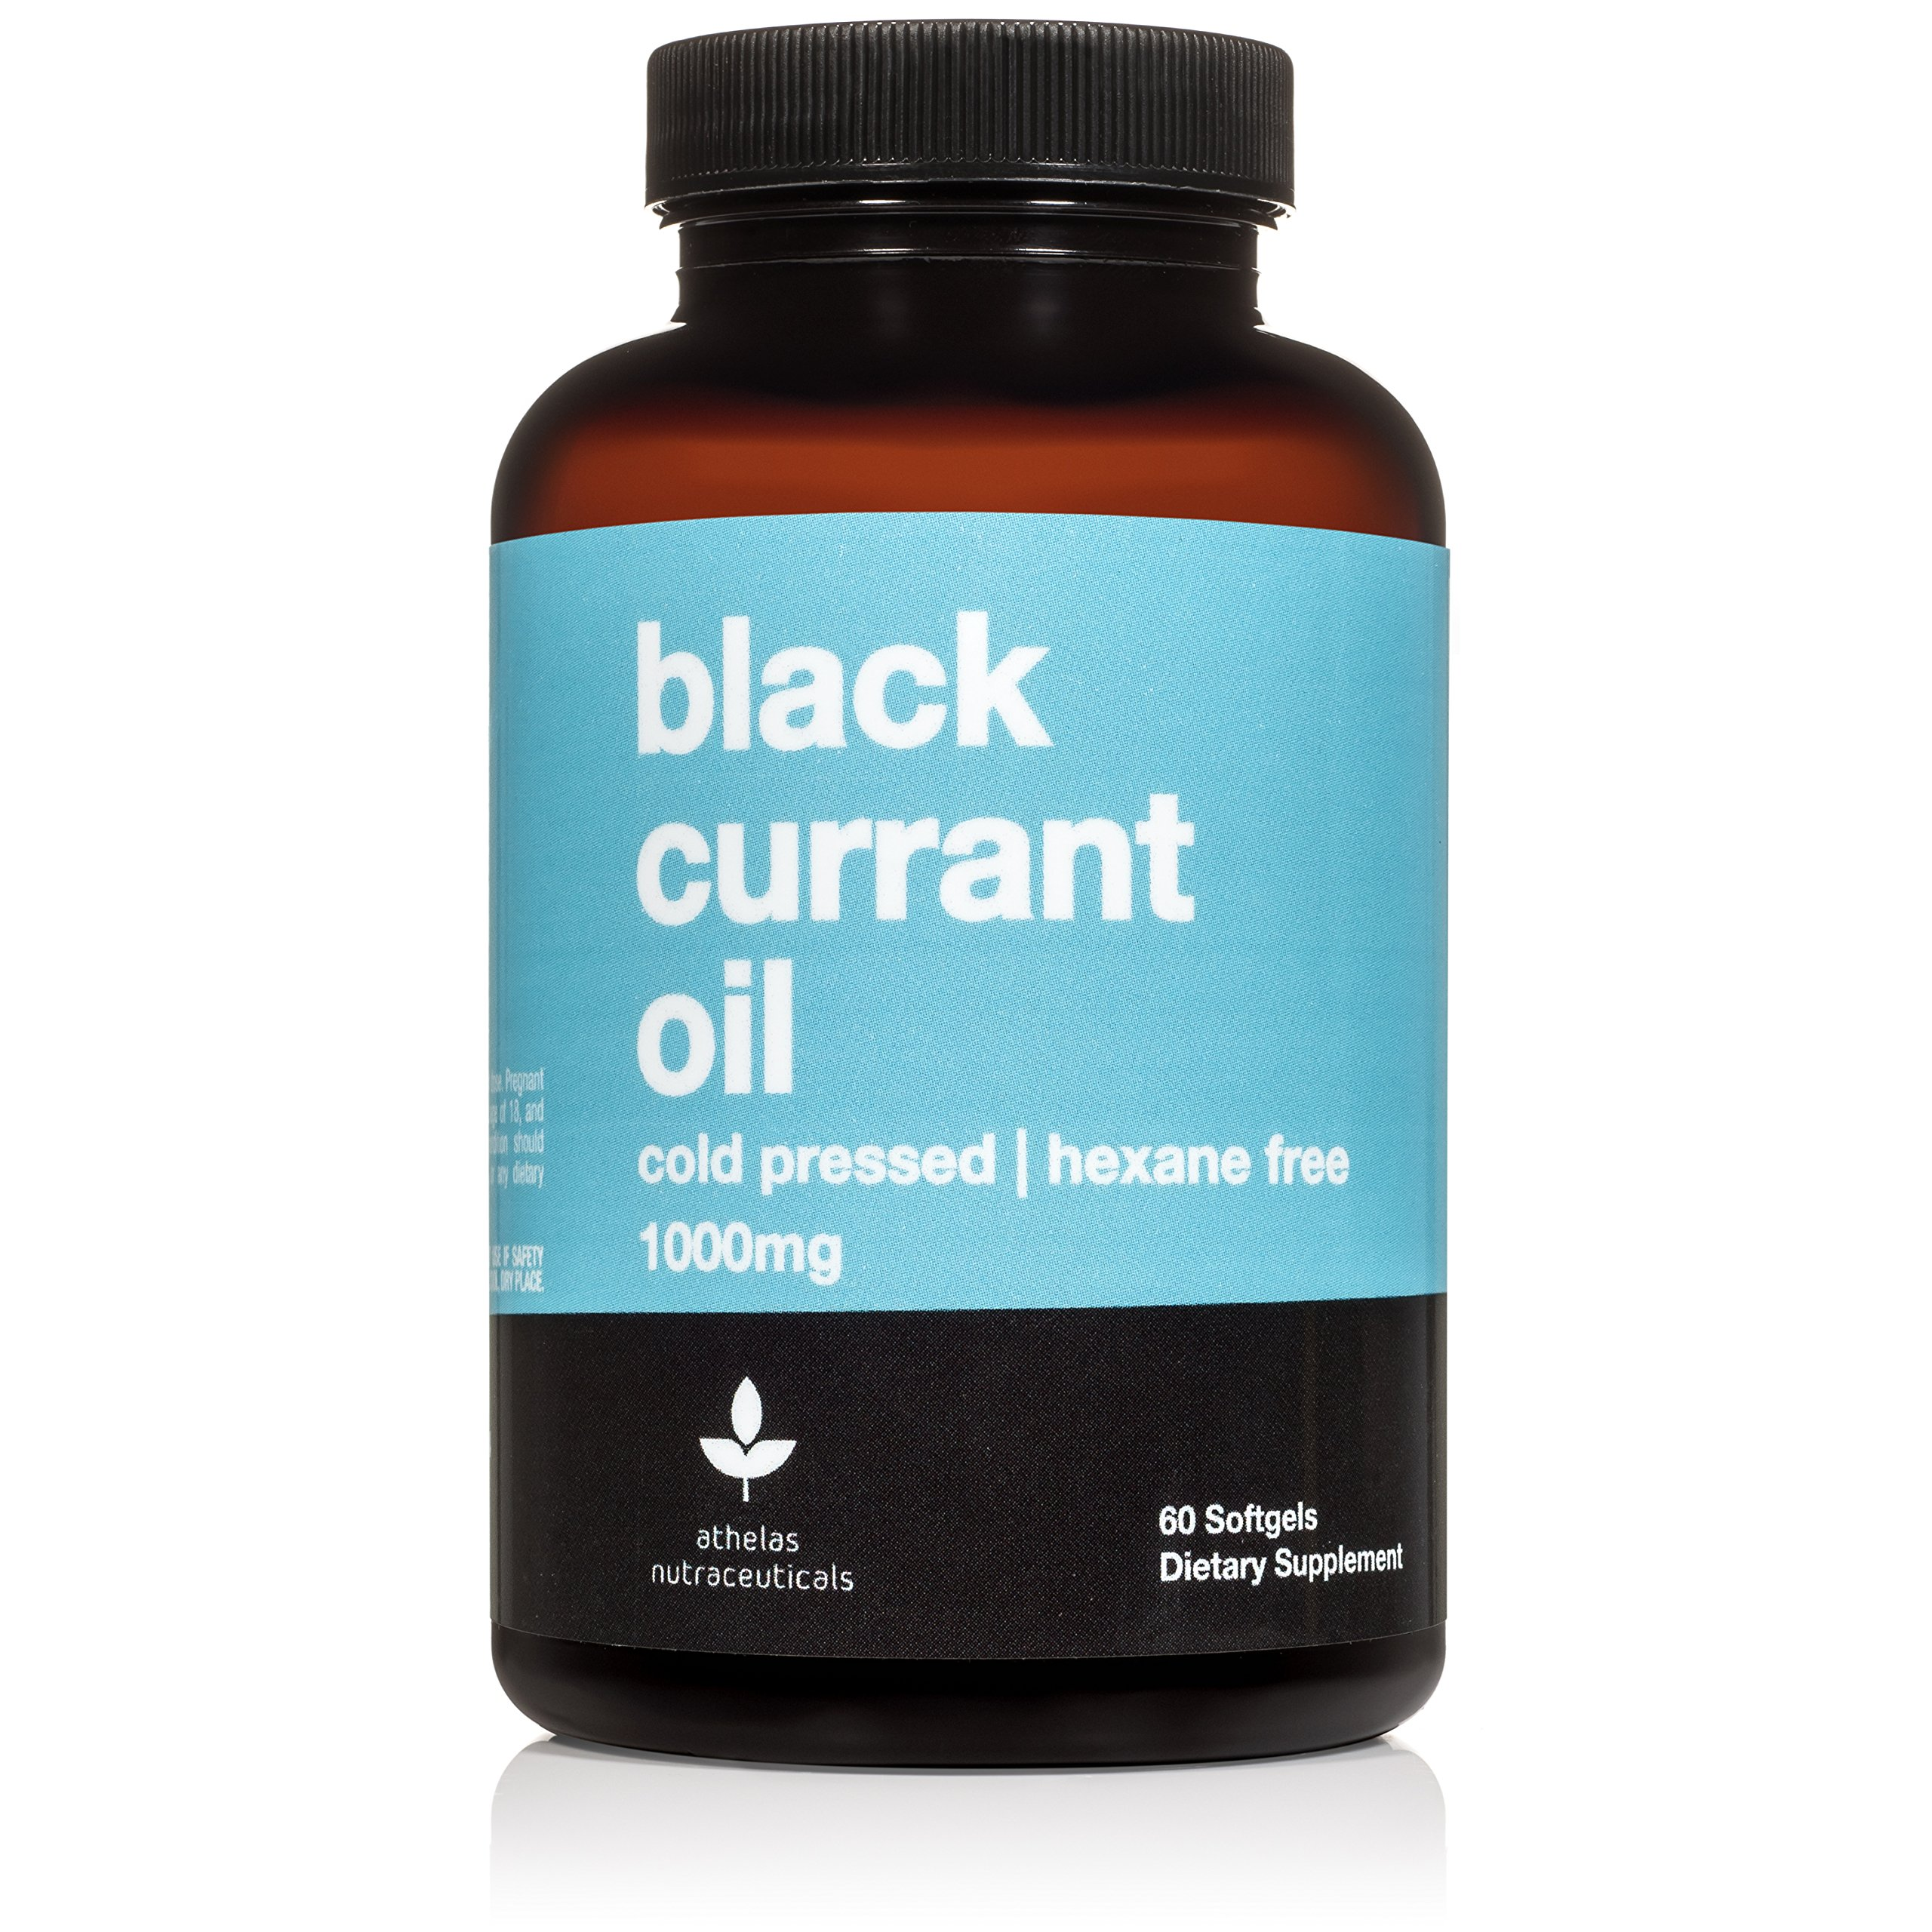 Black Currant Seed Oil 1000mg - Cold Pressed - Hexane Free - High in GLA - Supports Healthy Hair, Skin, and Nails - Assists Menstrual Cycle - Softgel Capsules Supplement